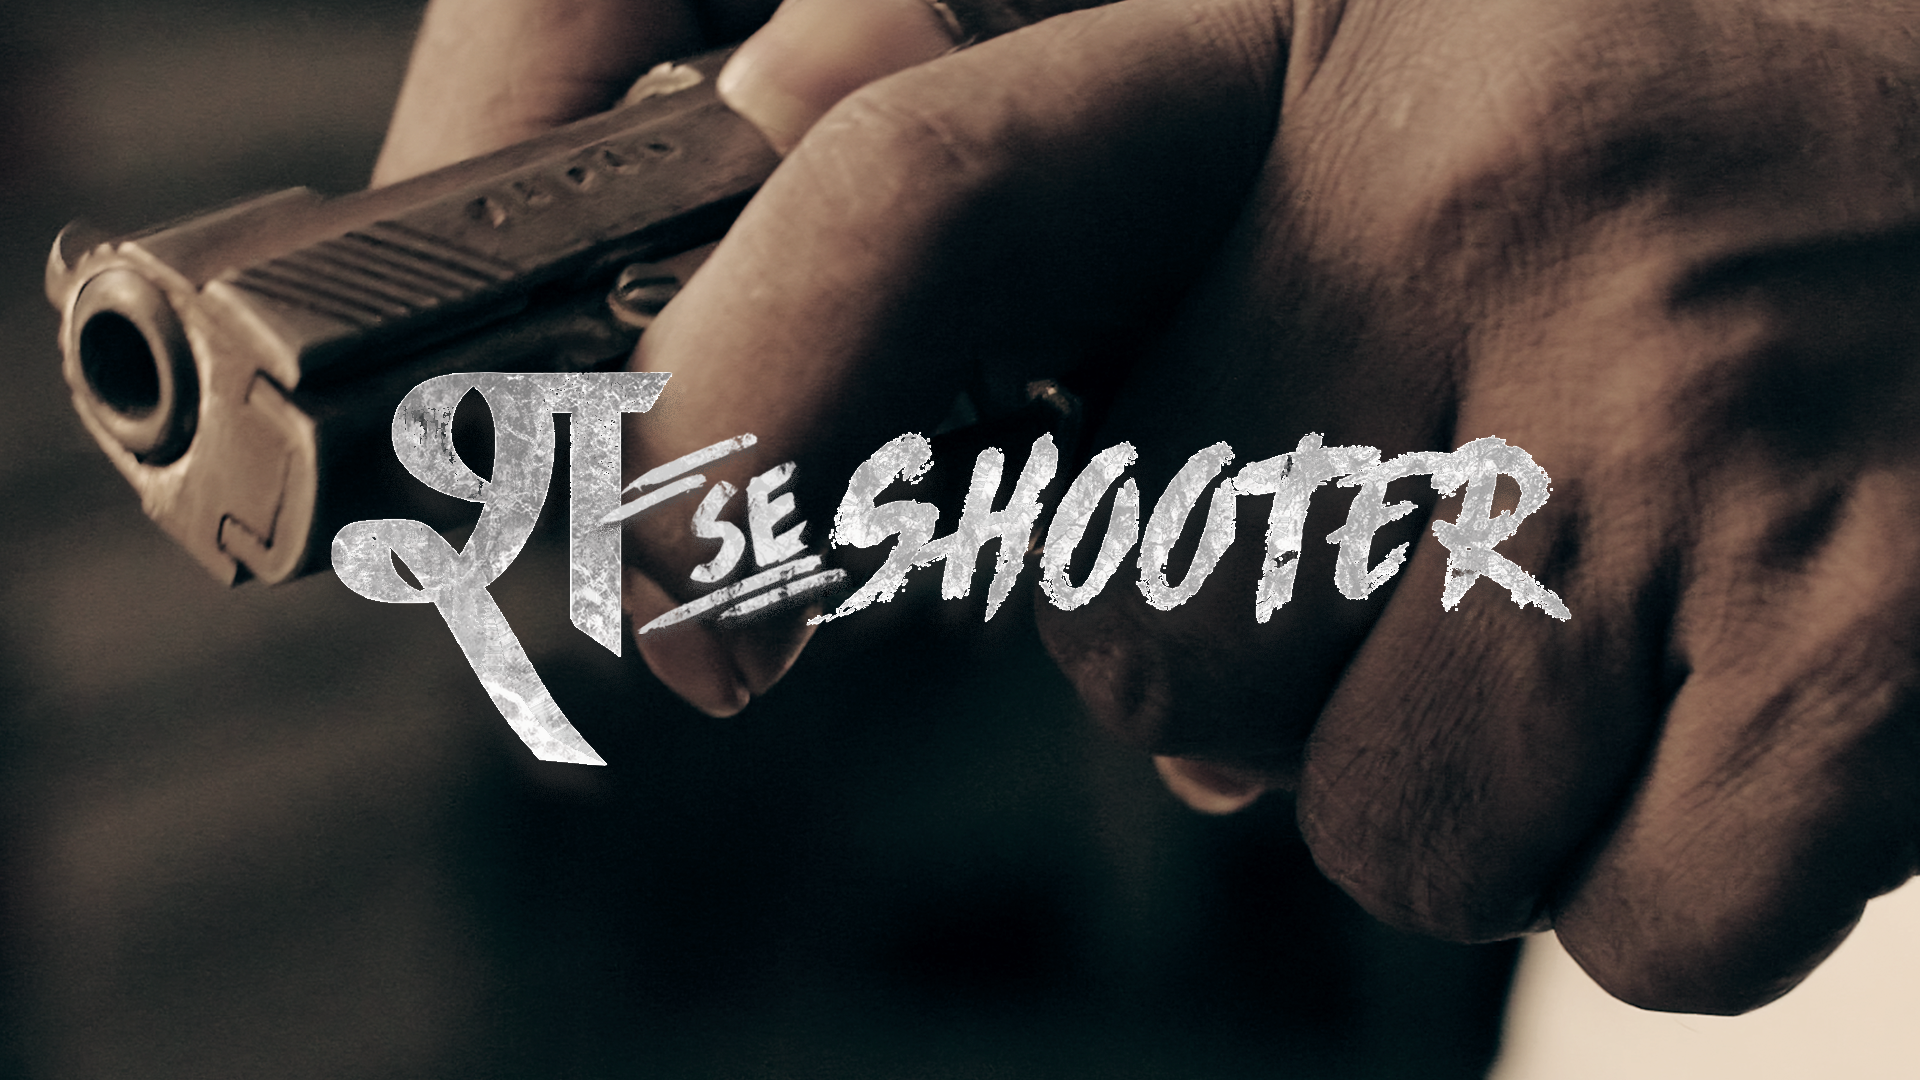 श se Shooter | Ep 1 of क se Crime - Created with Prime Original